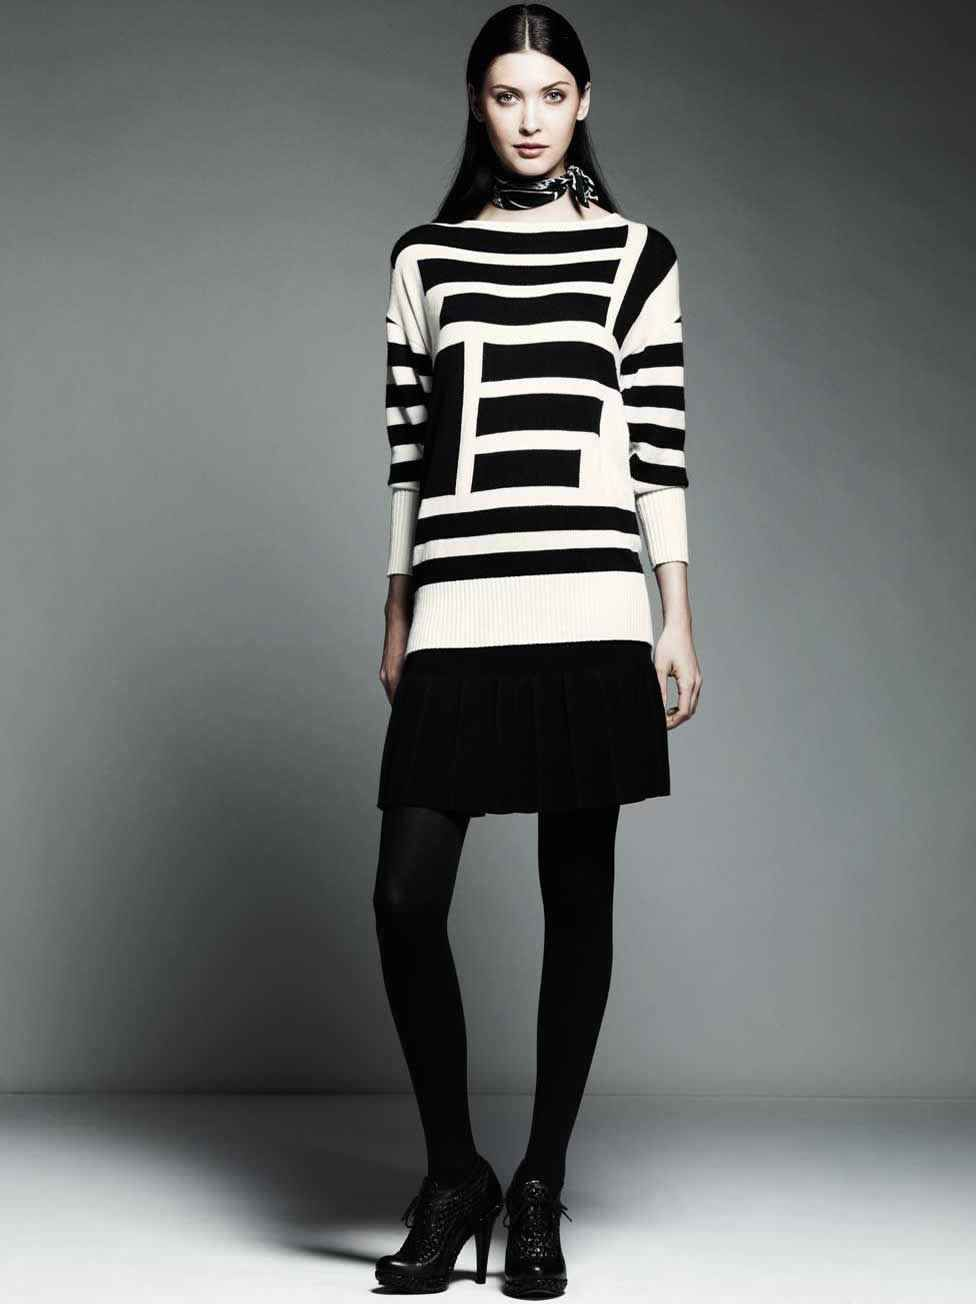 Introducing Catherine Malandrino for DesigNation - love the sweater, though it'd wear it with black skinnies instead.